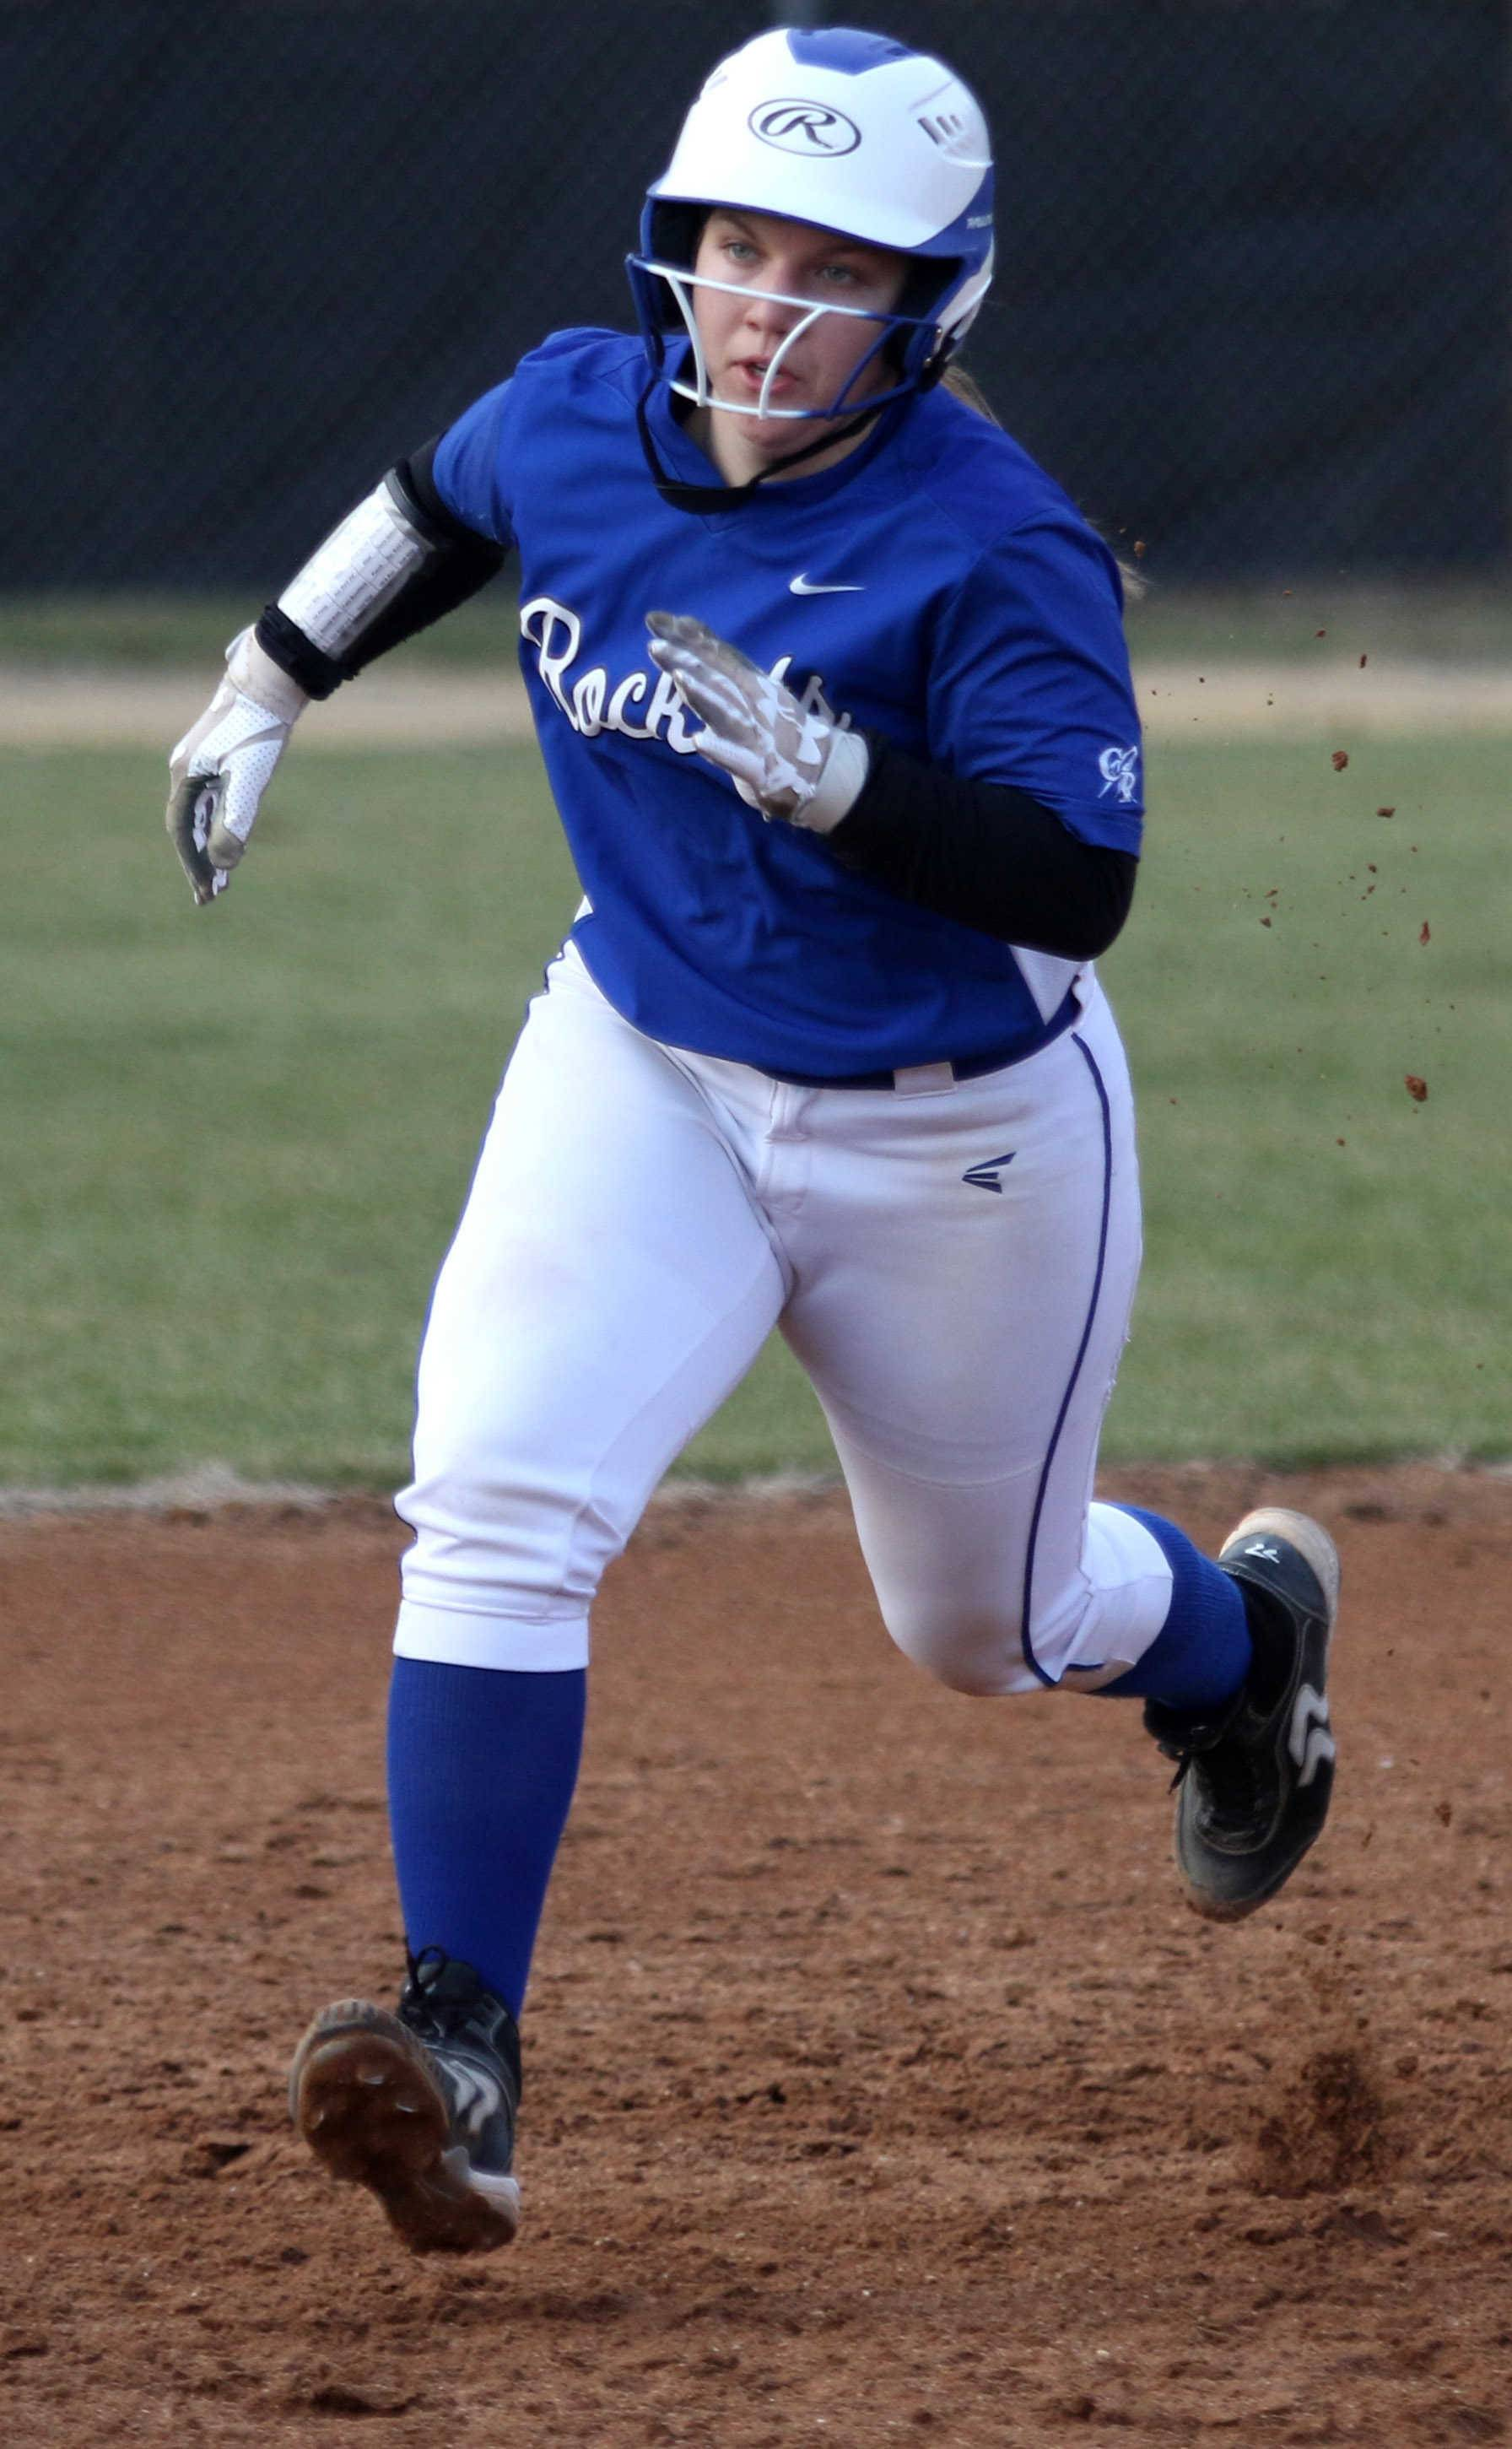 Burlington Central's Danielle Yurgil rounds second base during varsity softball action at Kaneland Monday night.